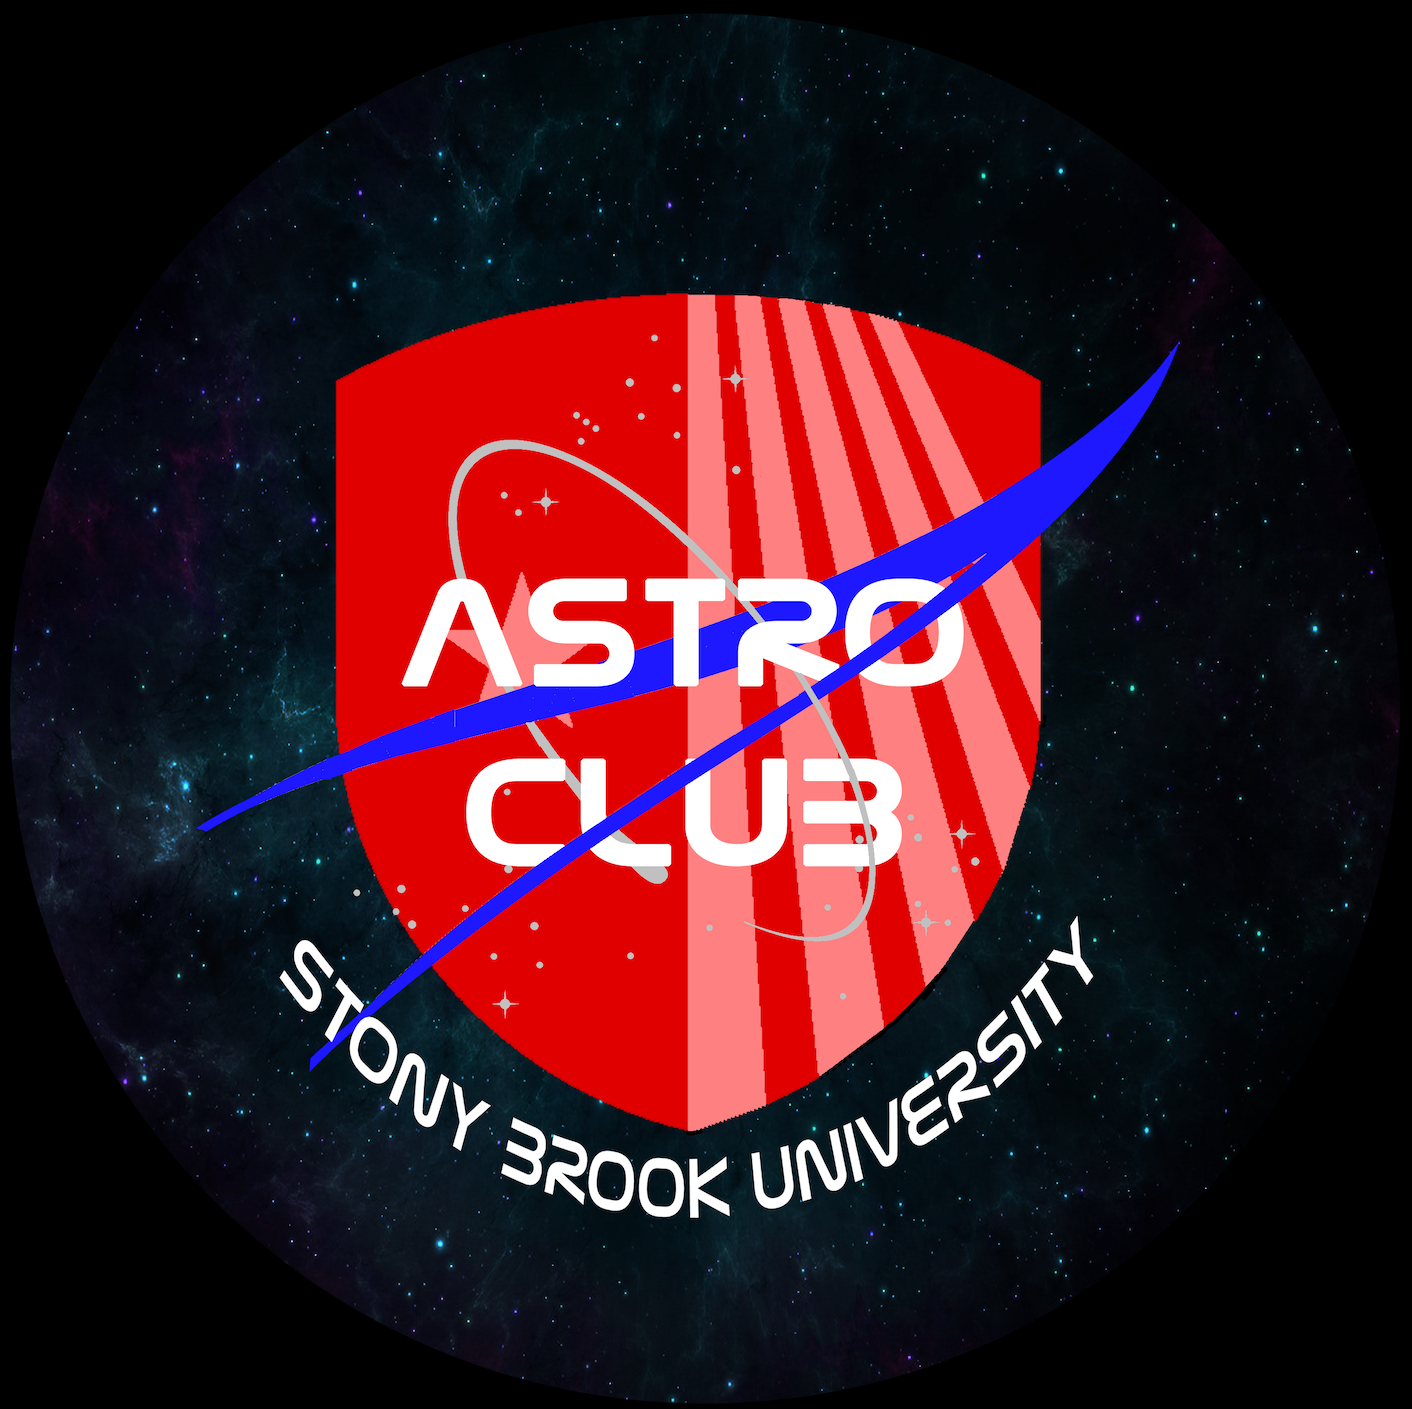 Stony Brook Astronomy Club